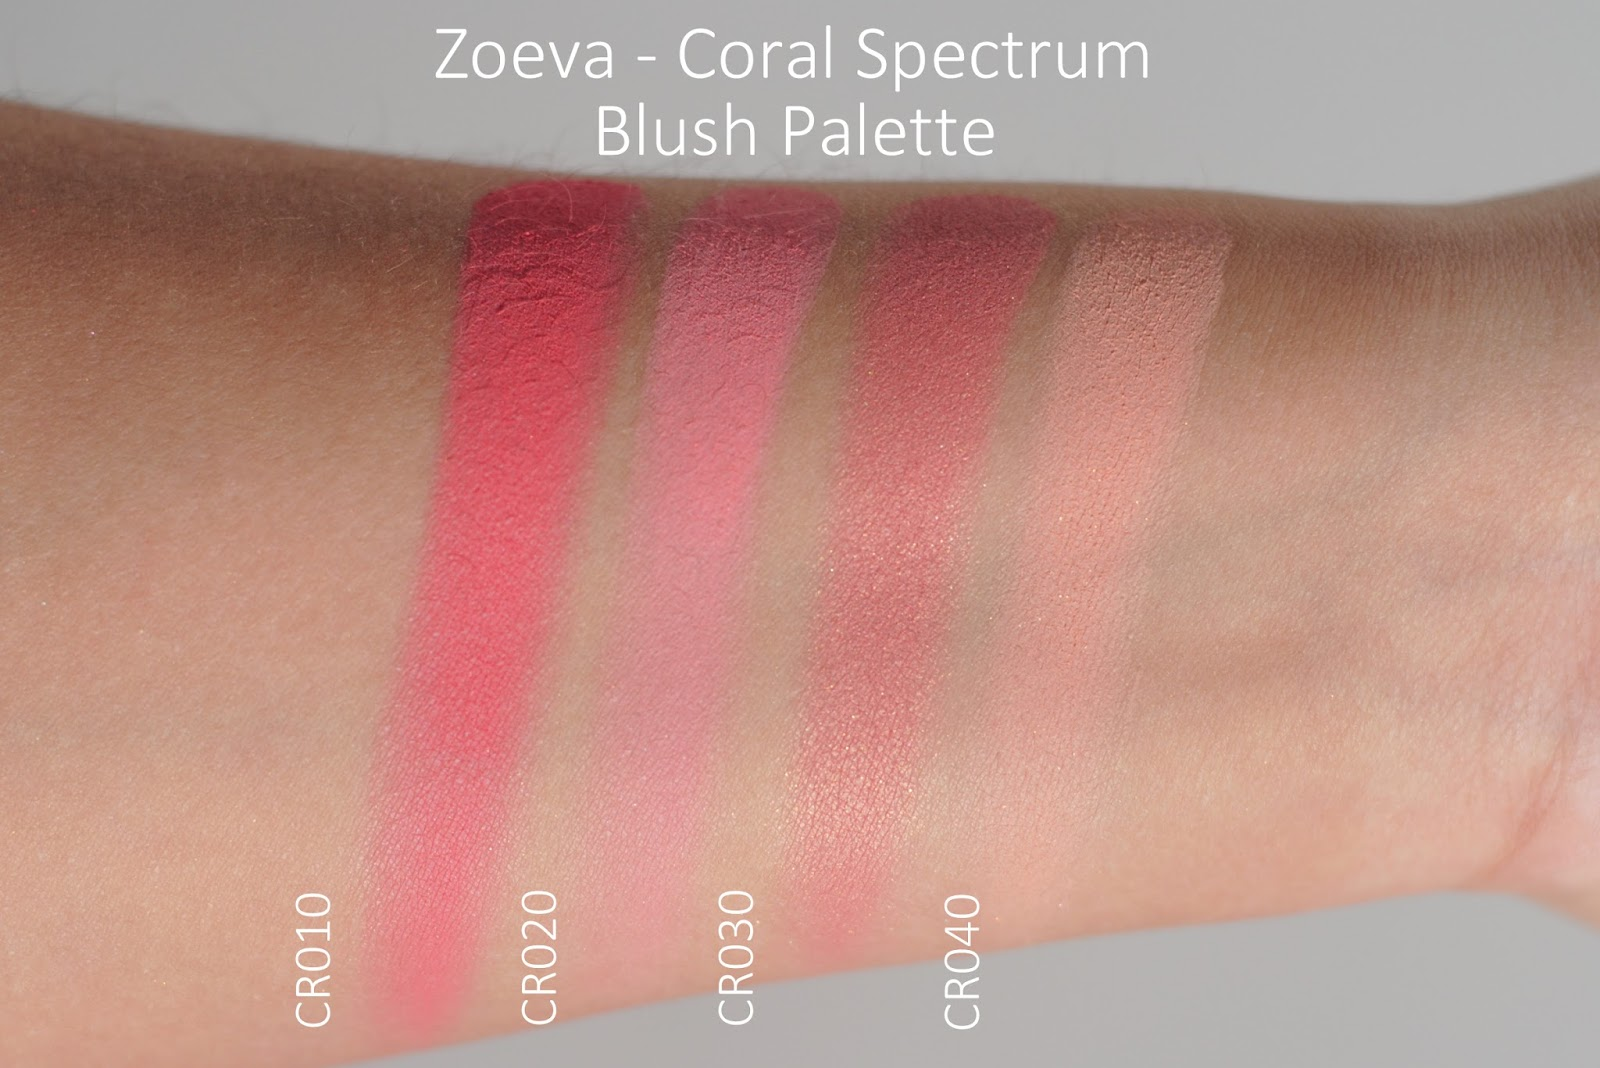 Coral Spectrum Blush Palette by zoeva #11